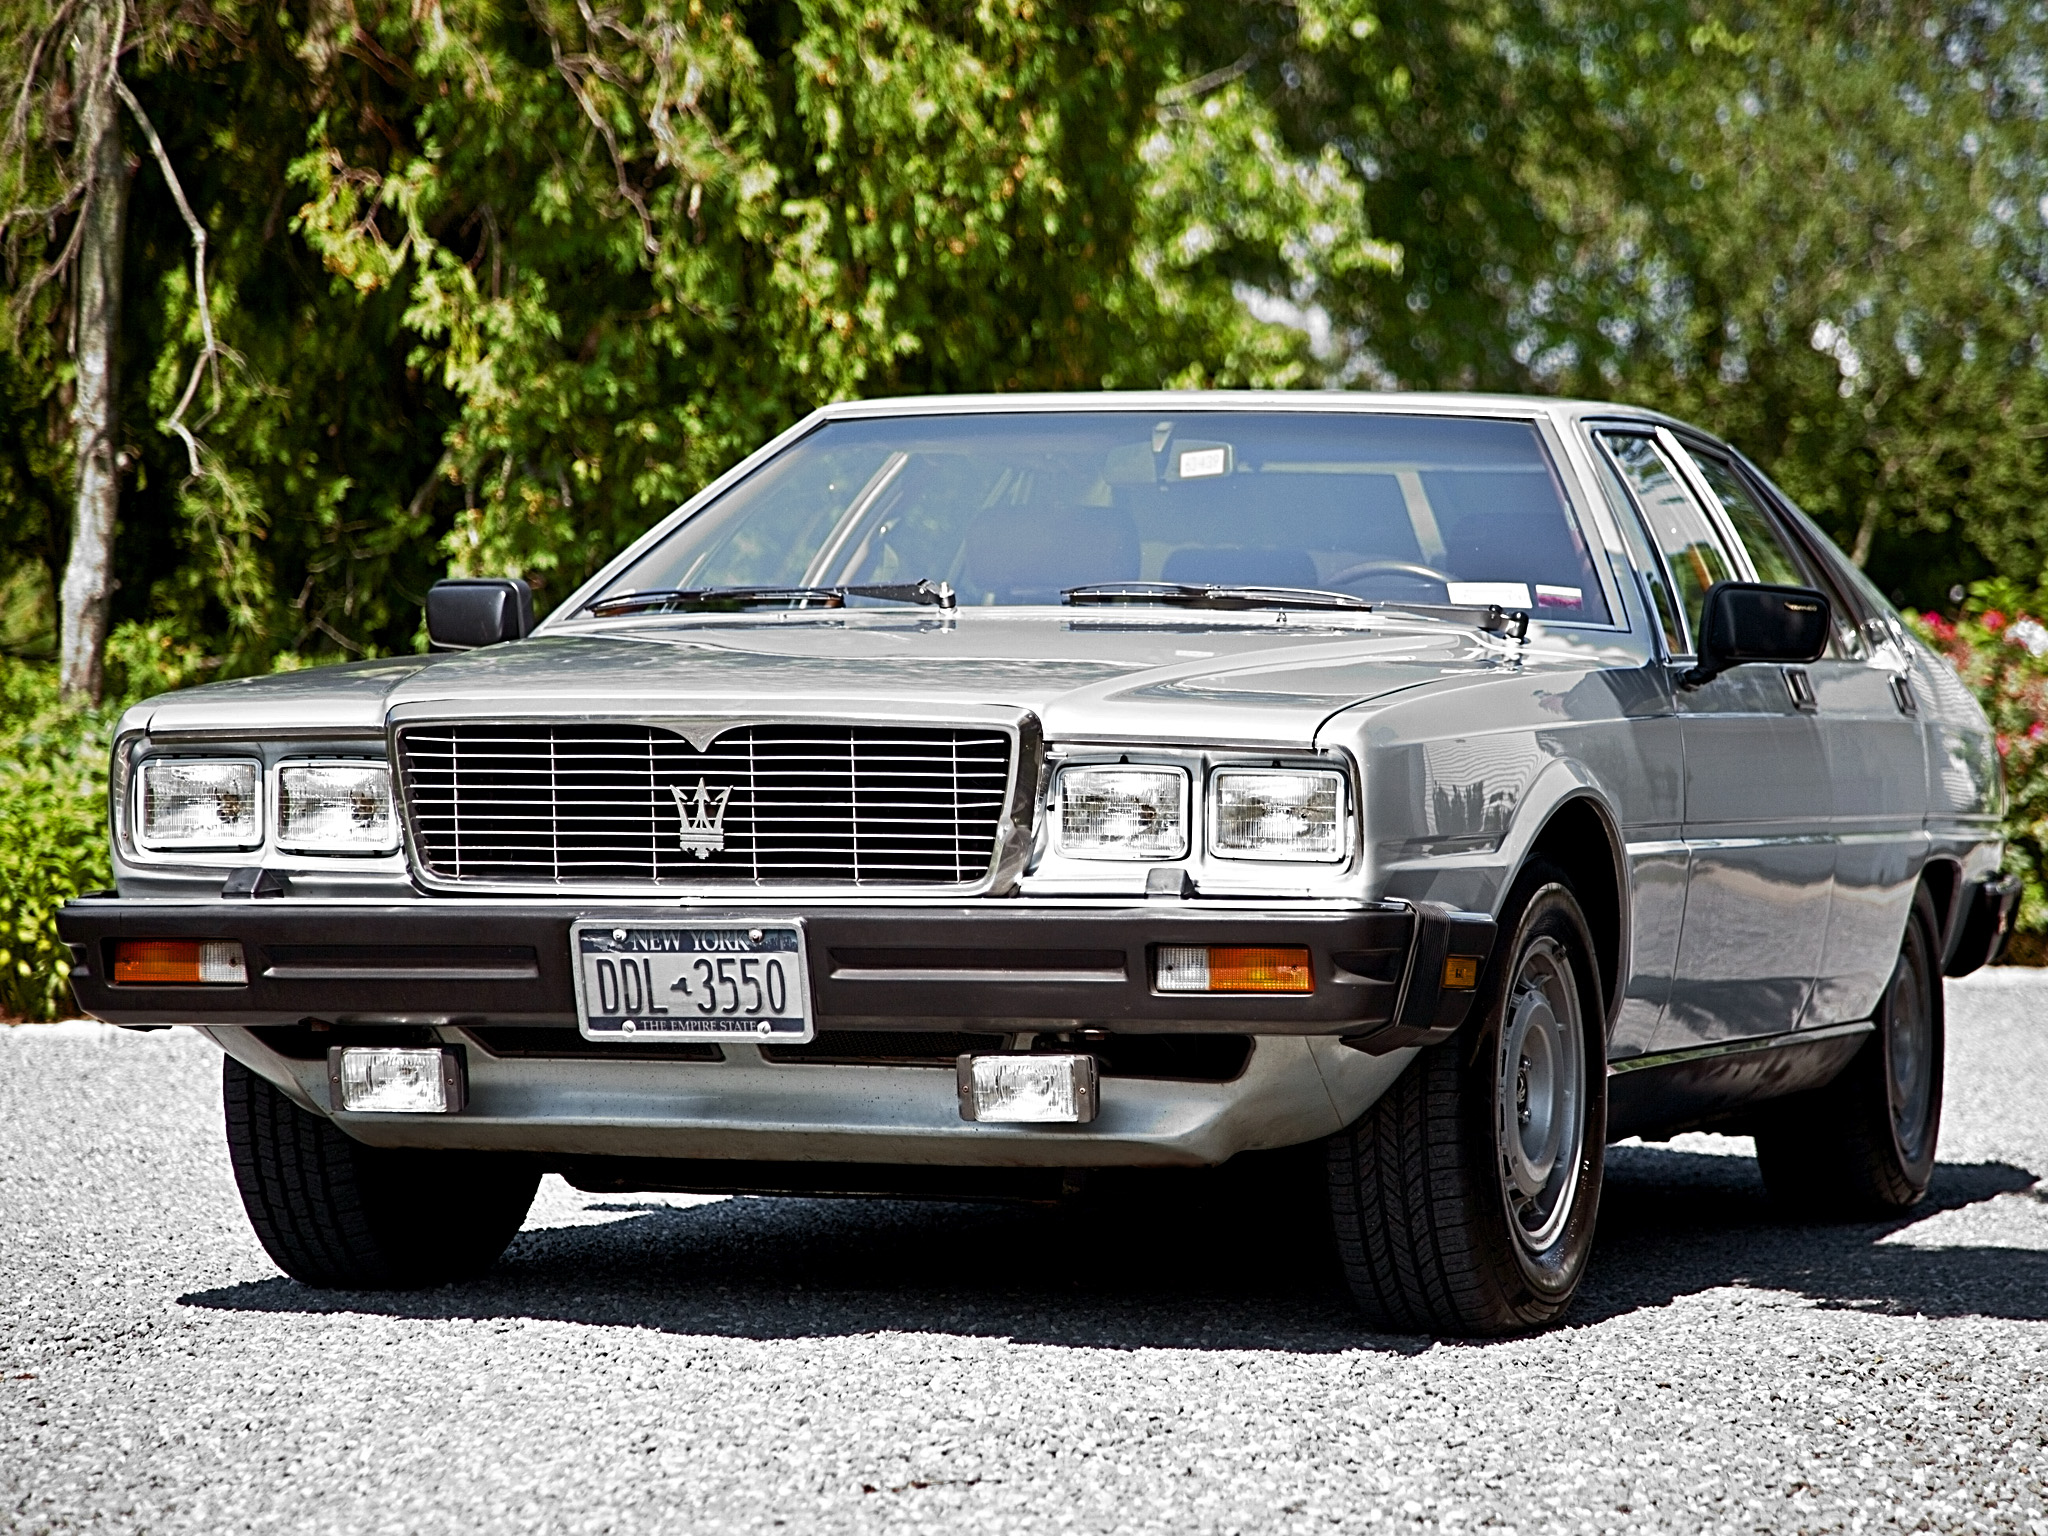 1998 Maserati Quattroporte iii - pictures, information and ...